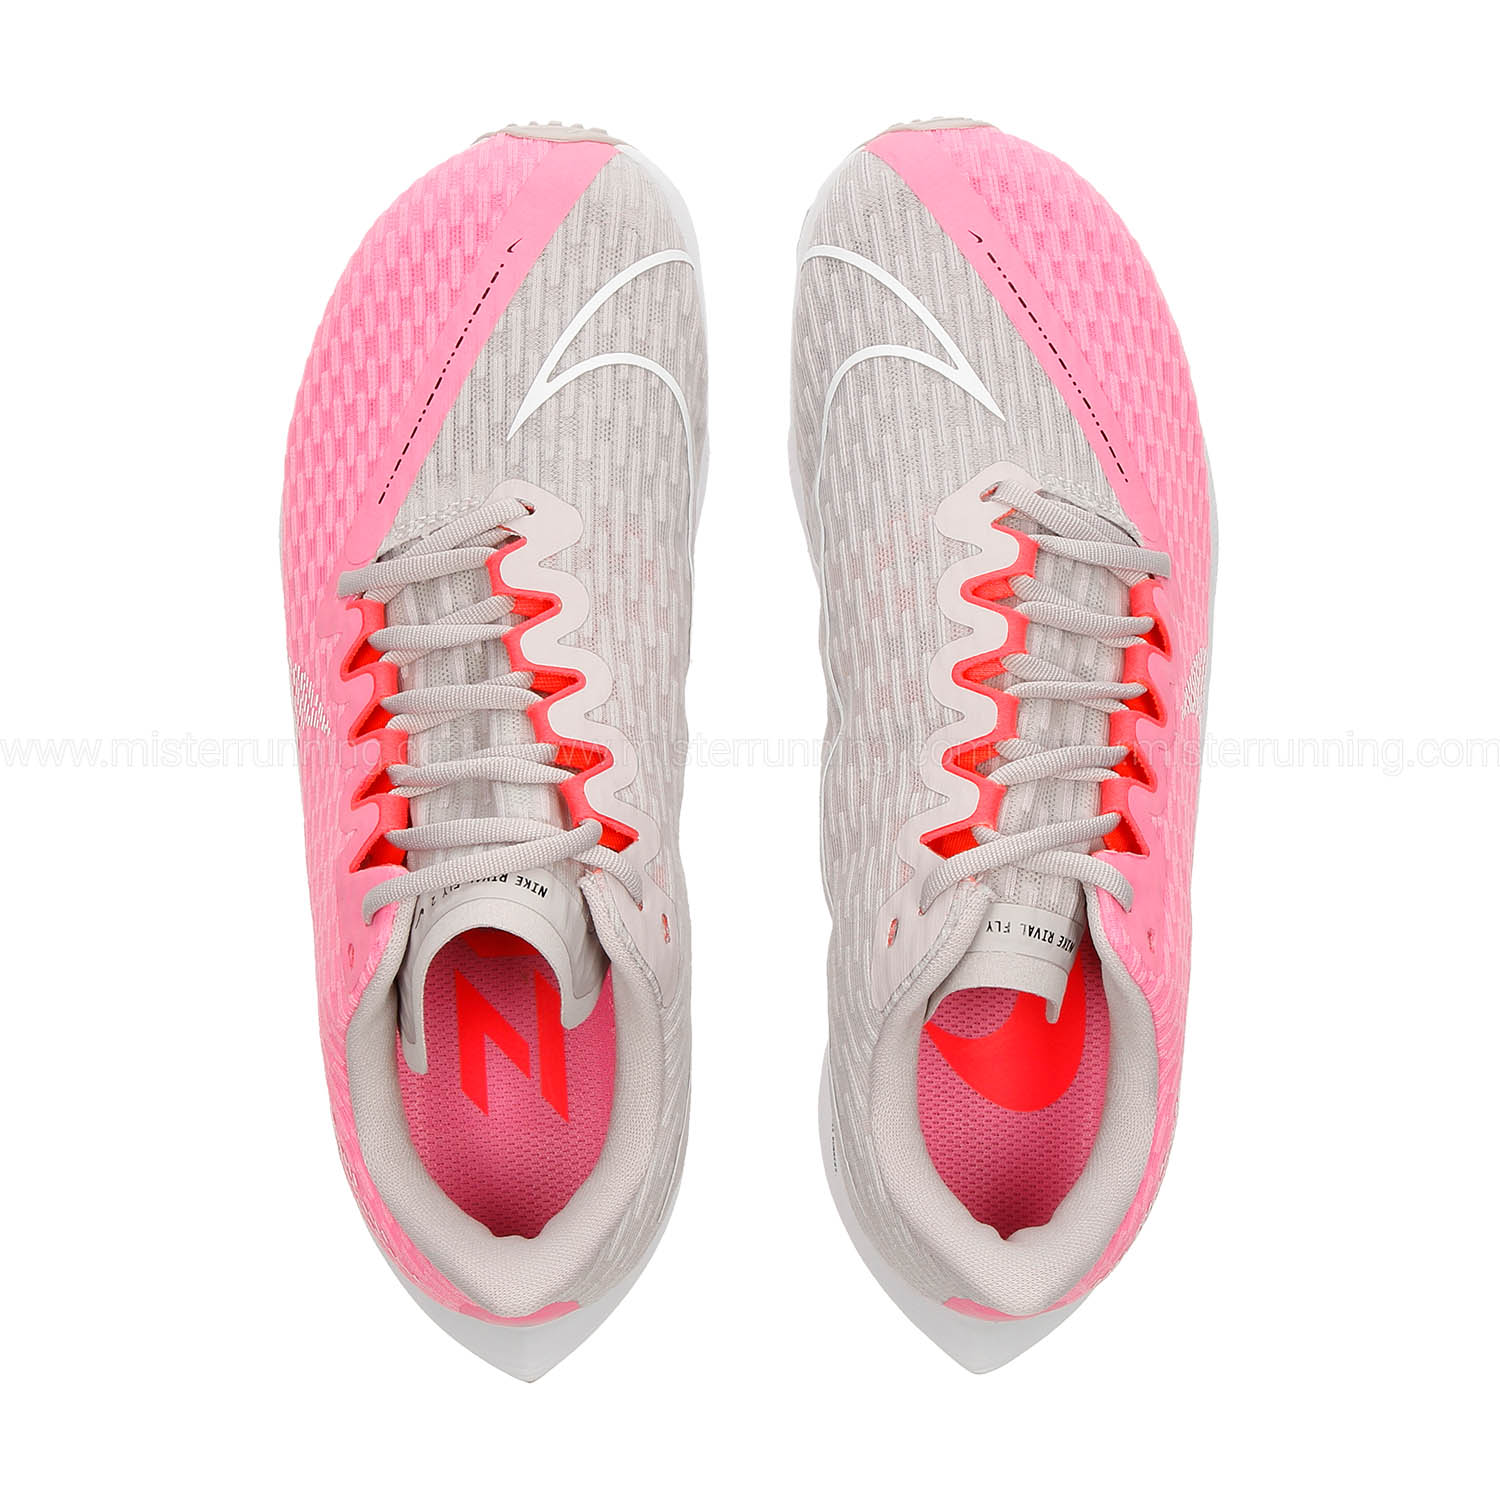 Nike Zoom Rival Fly 2 - Pink Glow/White/Platinum Violet